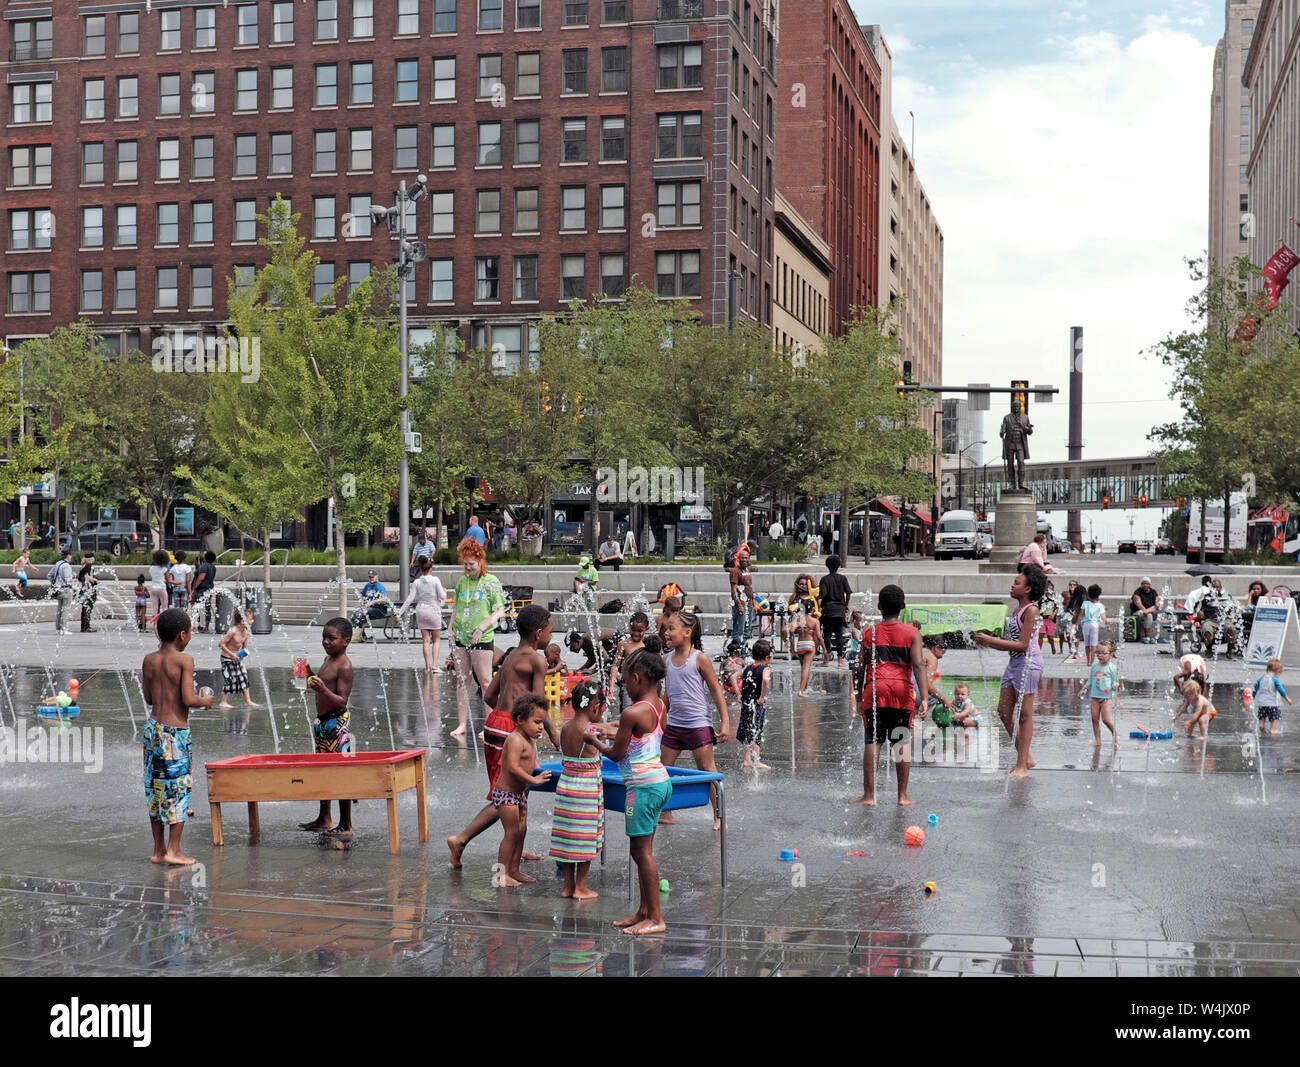 Children play in the water fountains of Public Square in downtown Cleveland, Ohio, USA during the summer. Stock Photo